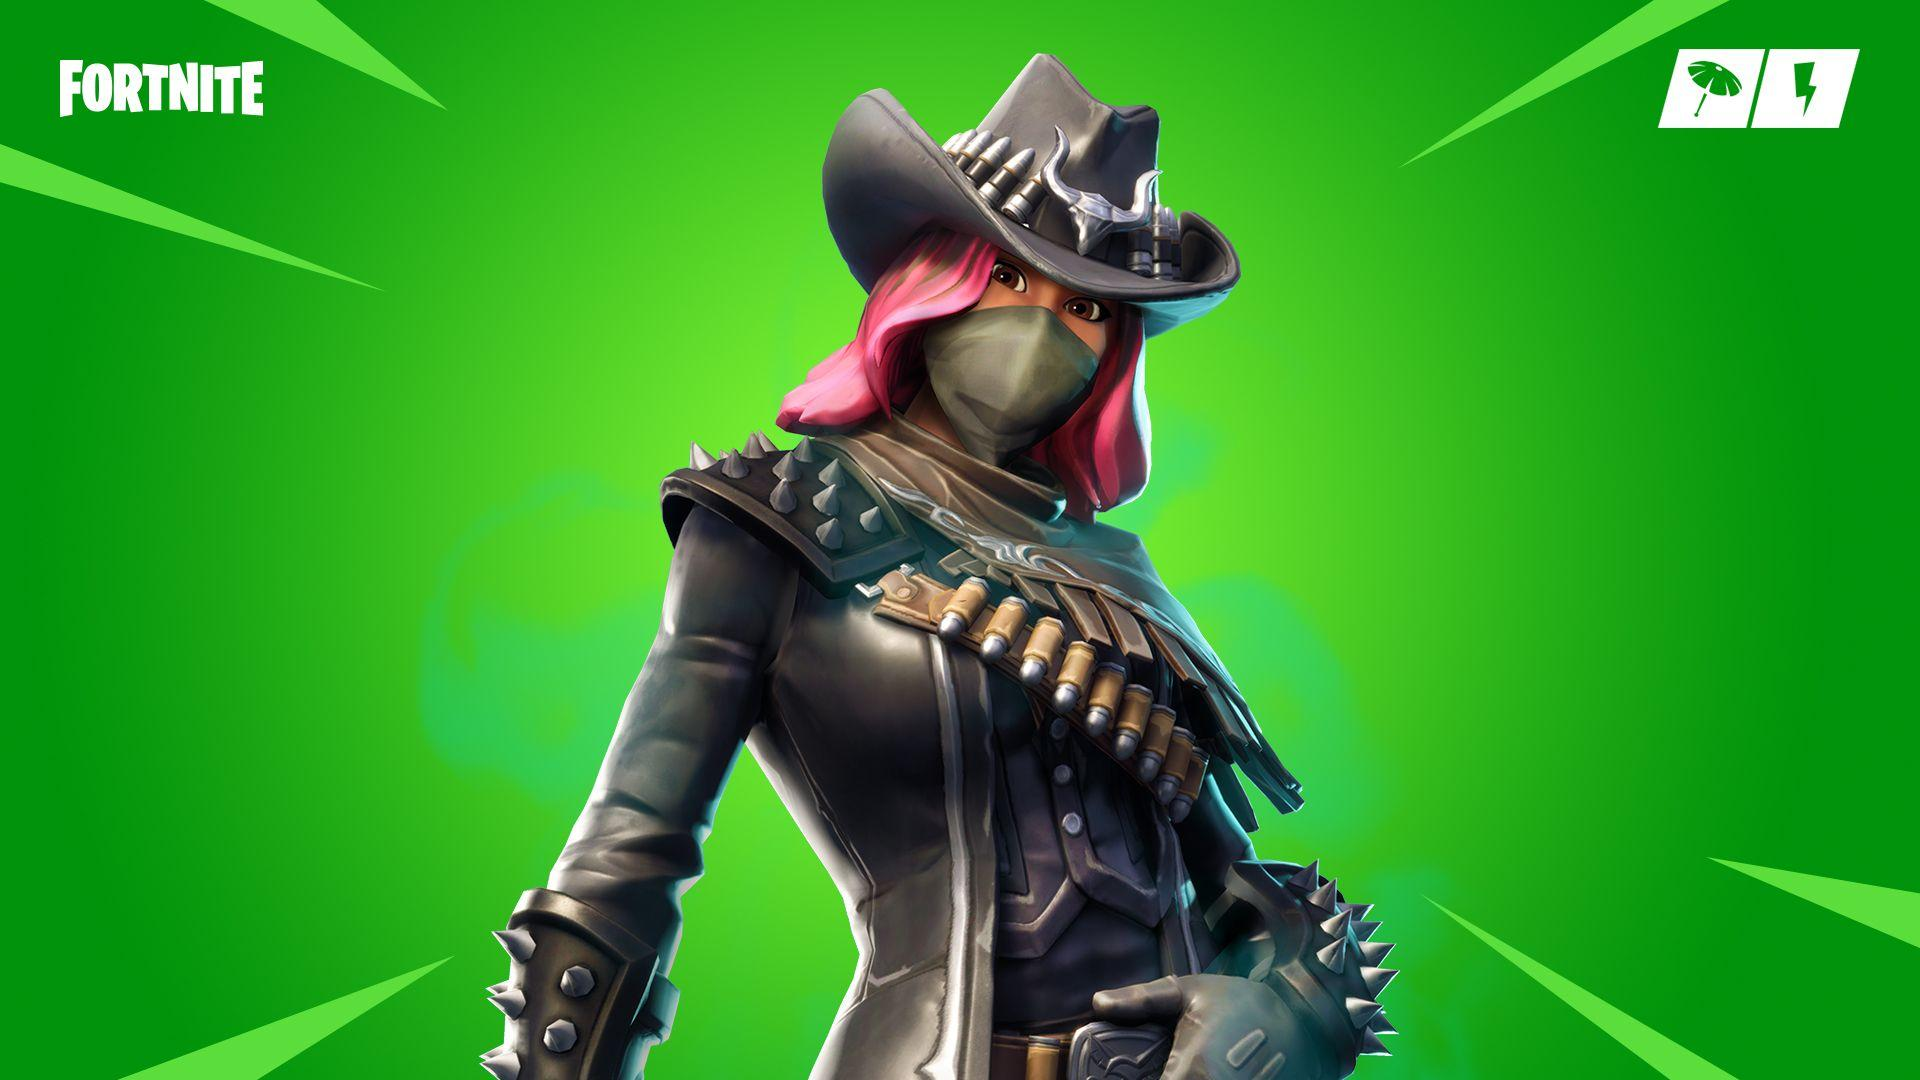 Fortnite Halloween update: Fortnitemares, new challenges, weapons